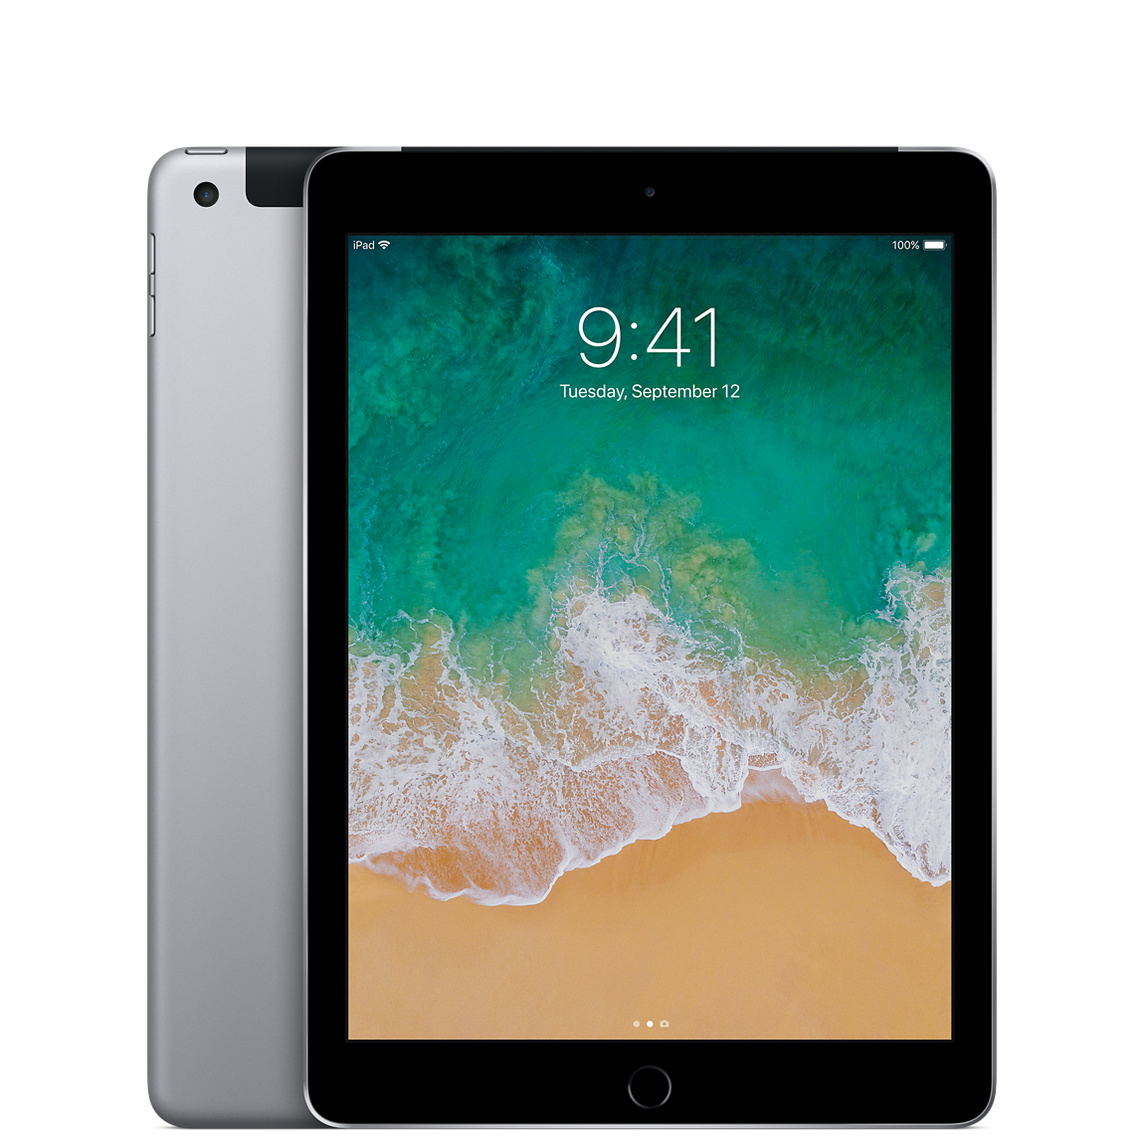 Refurbished iPad Wi-Fi + Cellular 32GB - Space Gray (5th generation)